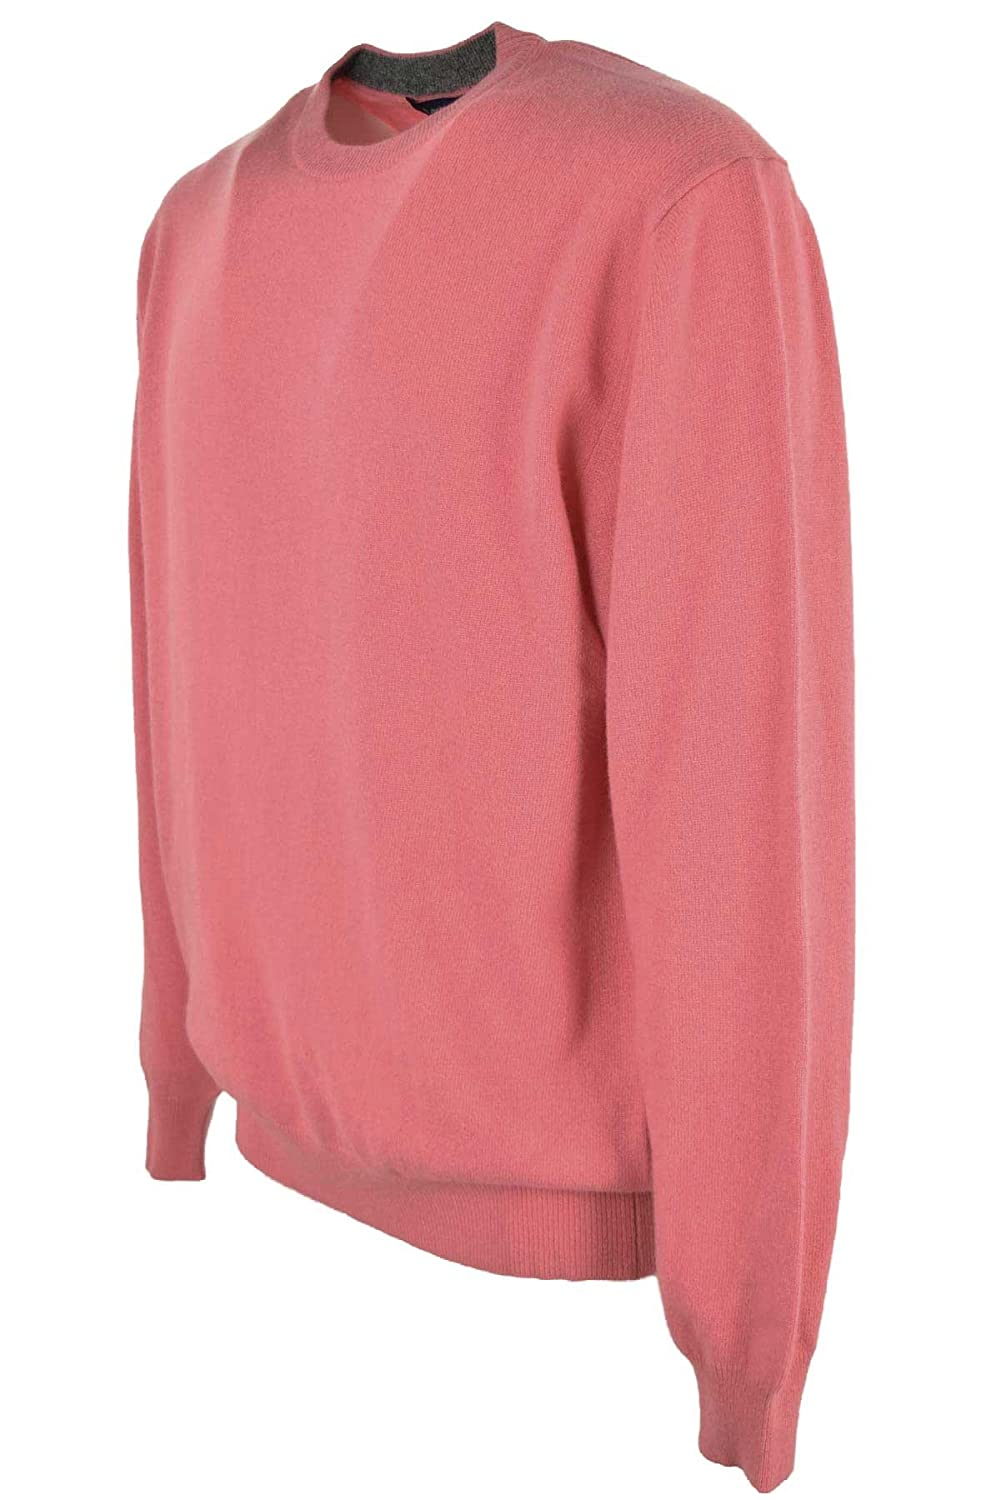 Sweater Men Crew Neck Coral Pink - 2-Wire Wool Blend Cashmere - Pink, M:  Amazon.co.uk: Clothing